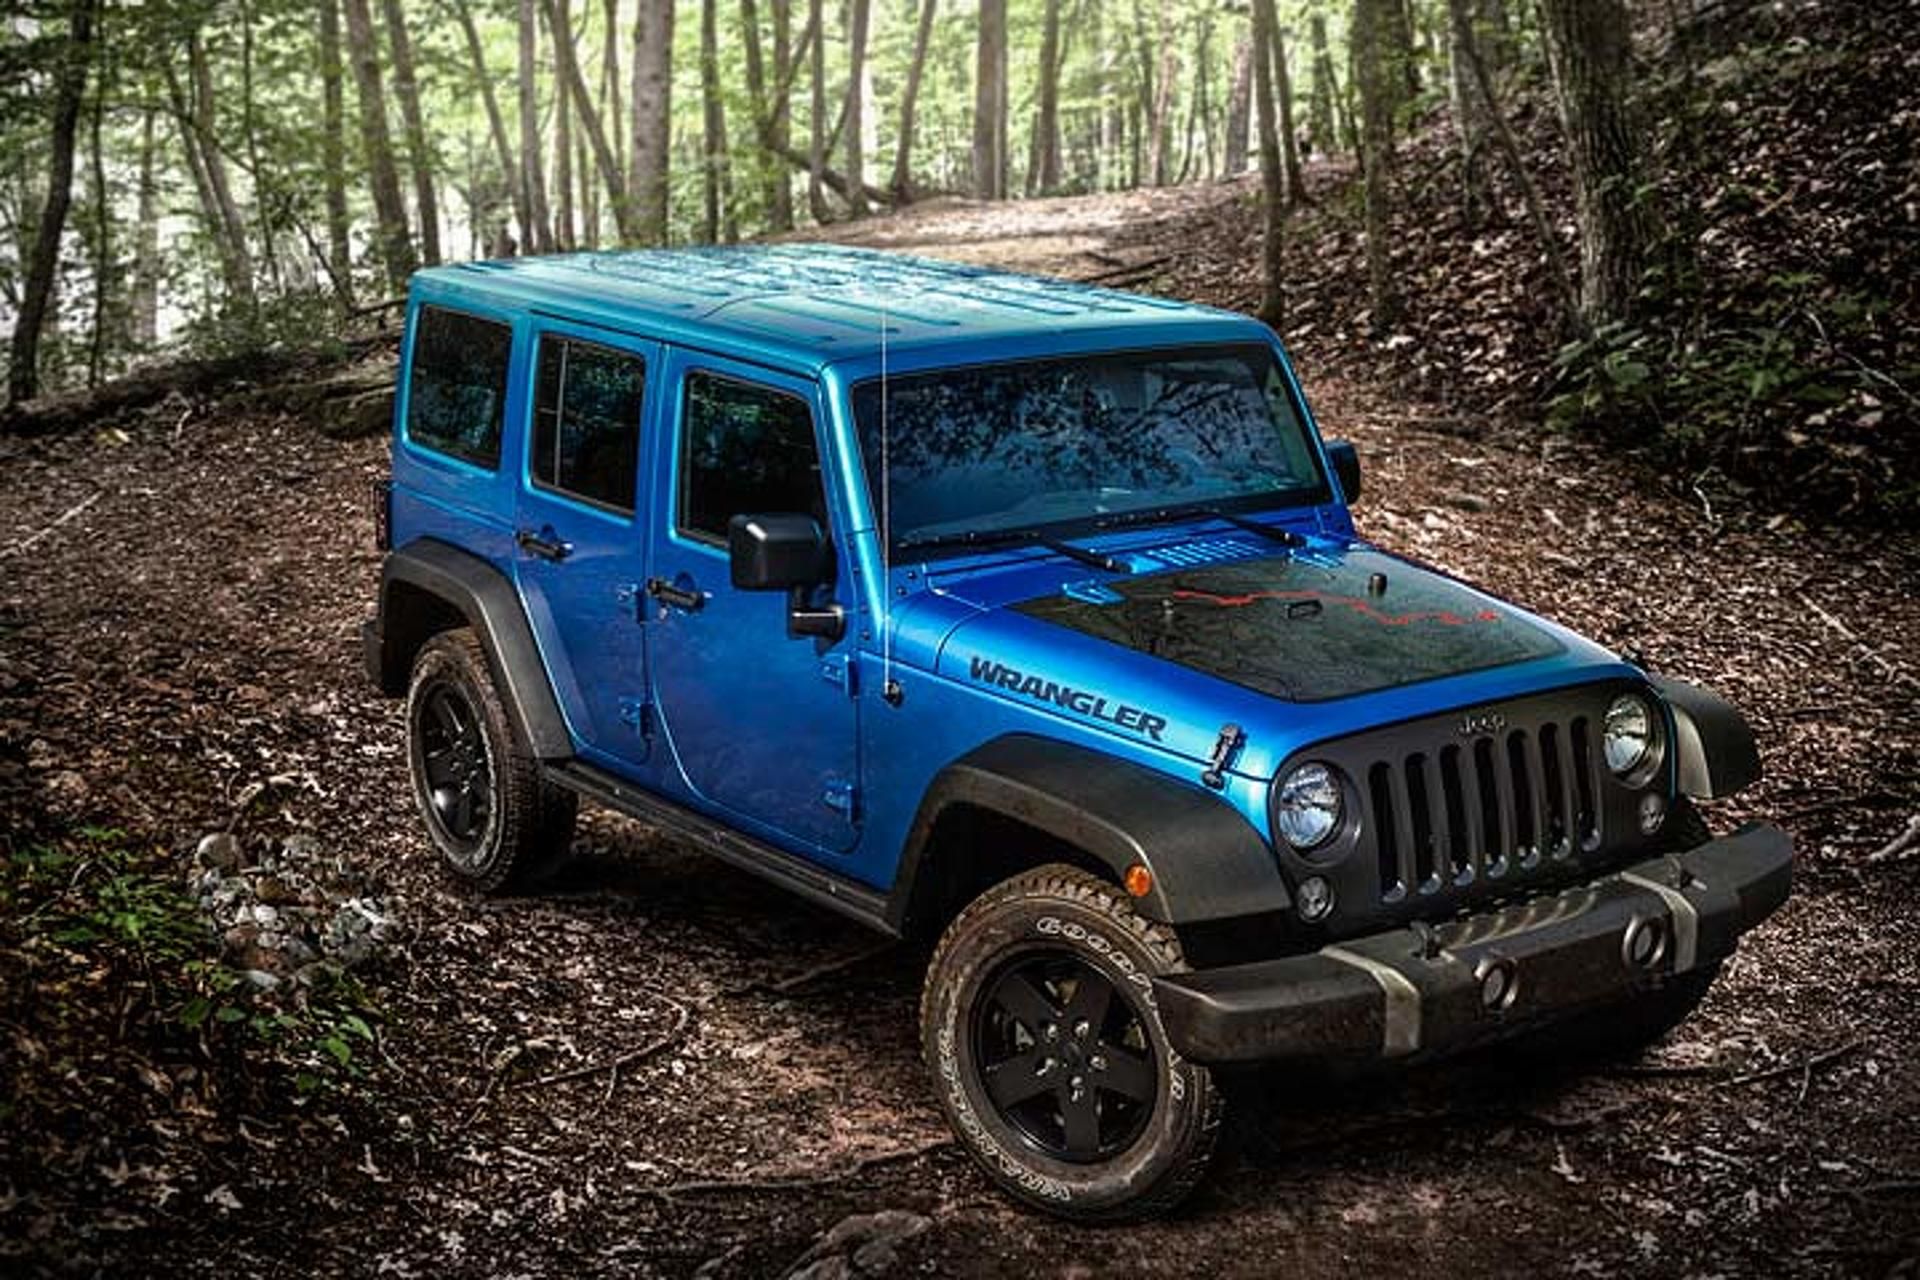 The Next-Gen Jeep Wrangler Gets Diesel and Hybrid Variants